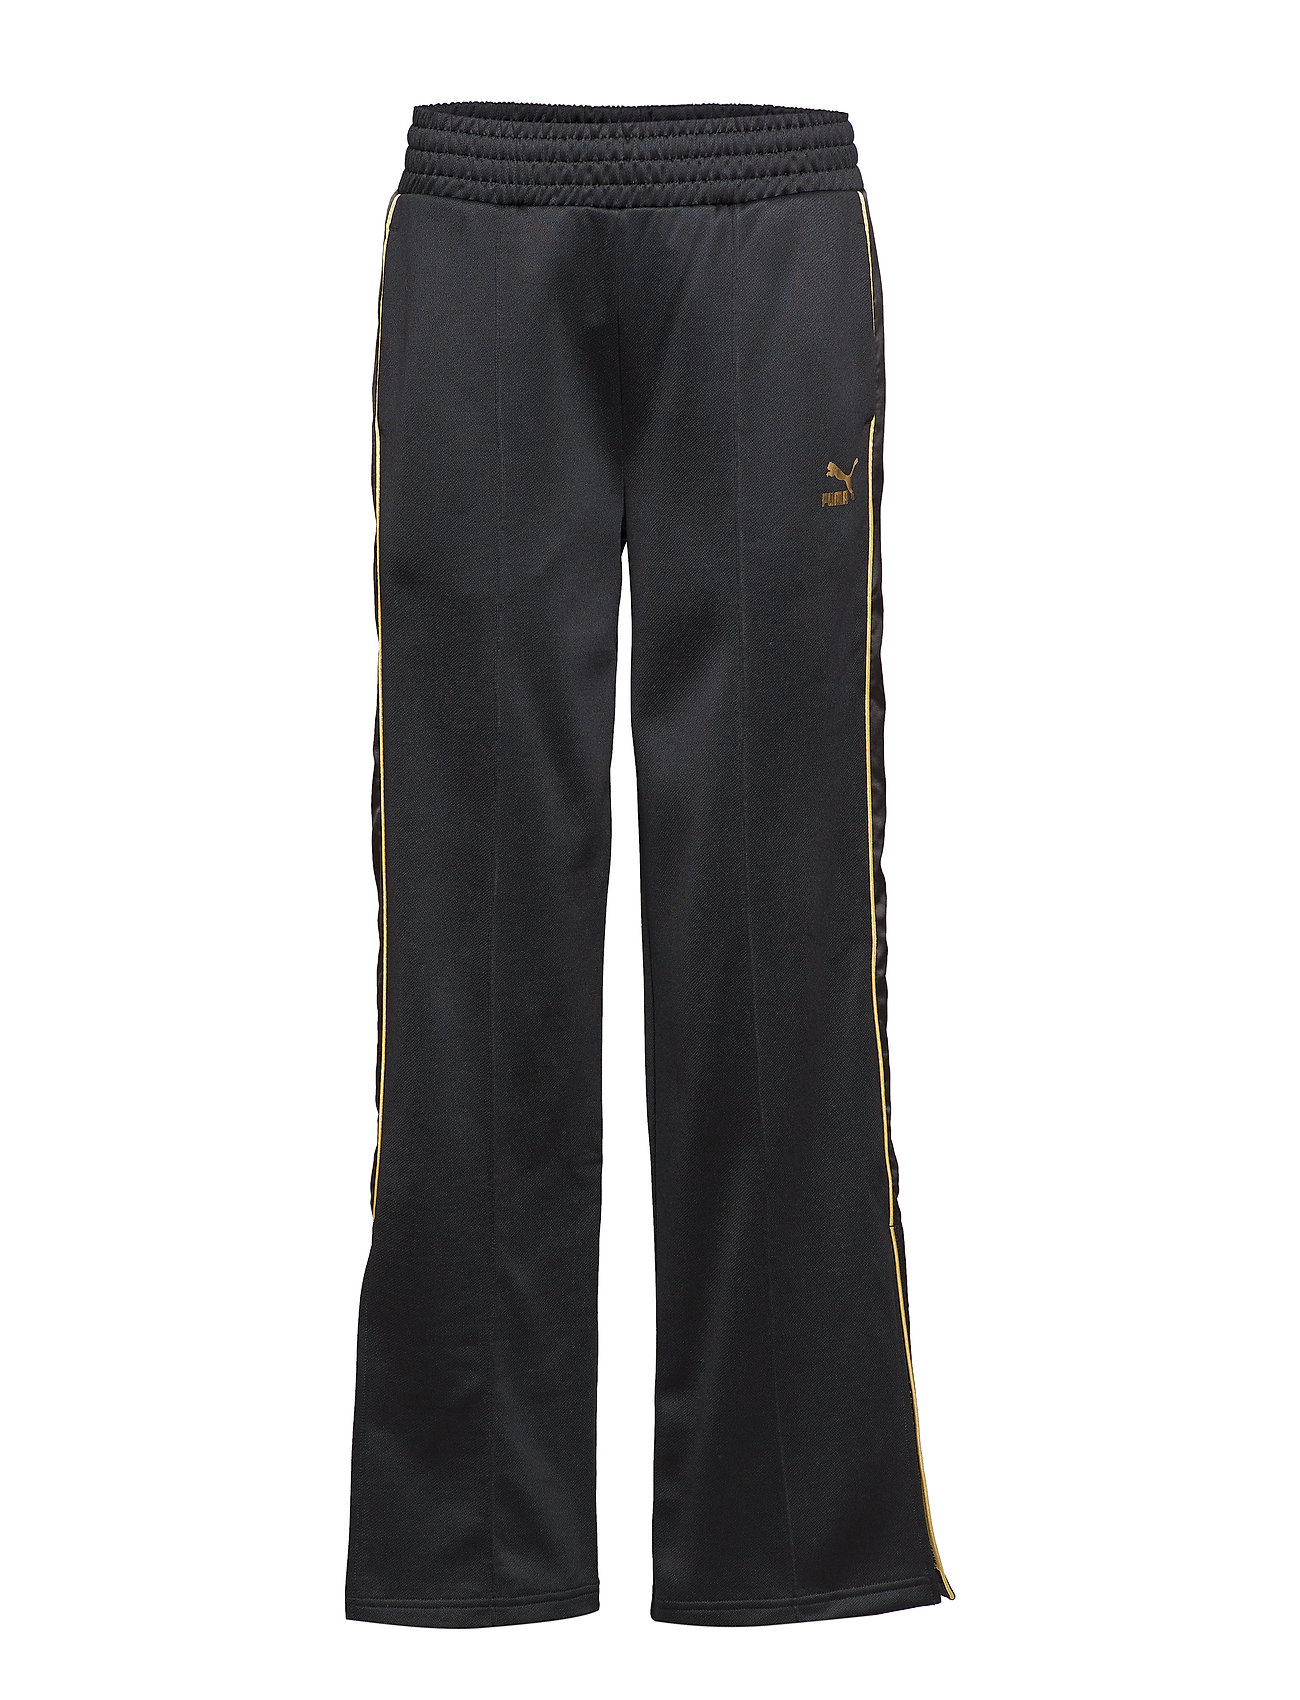 PUMA PUMA x KENZA Poly Pants Sweatpants